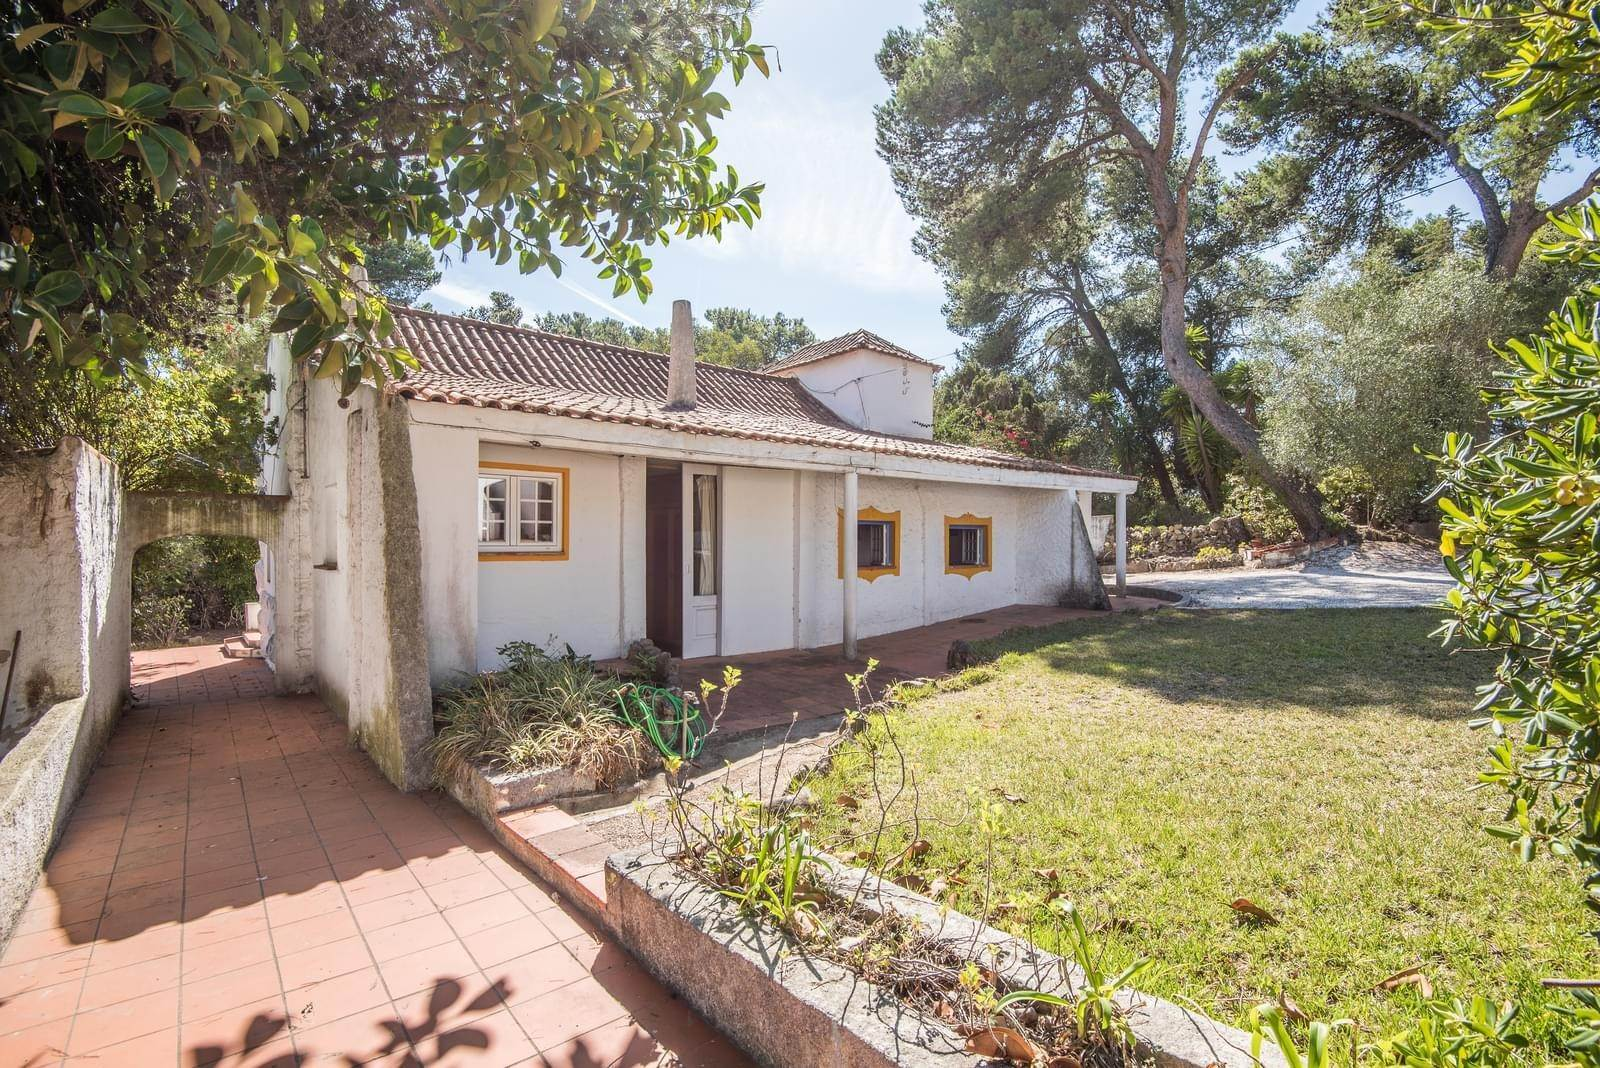 5. 別墅 / 联排别墅 為 出售 在 Unique property, located next to Quinta da Marinha, a quiet area.The property comprises six small villas, with deep refu... Cascais, 葡萄牙